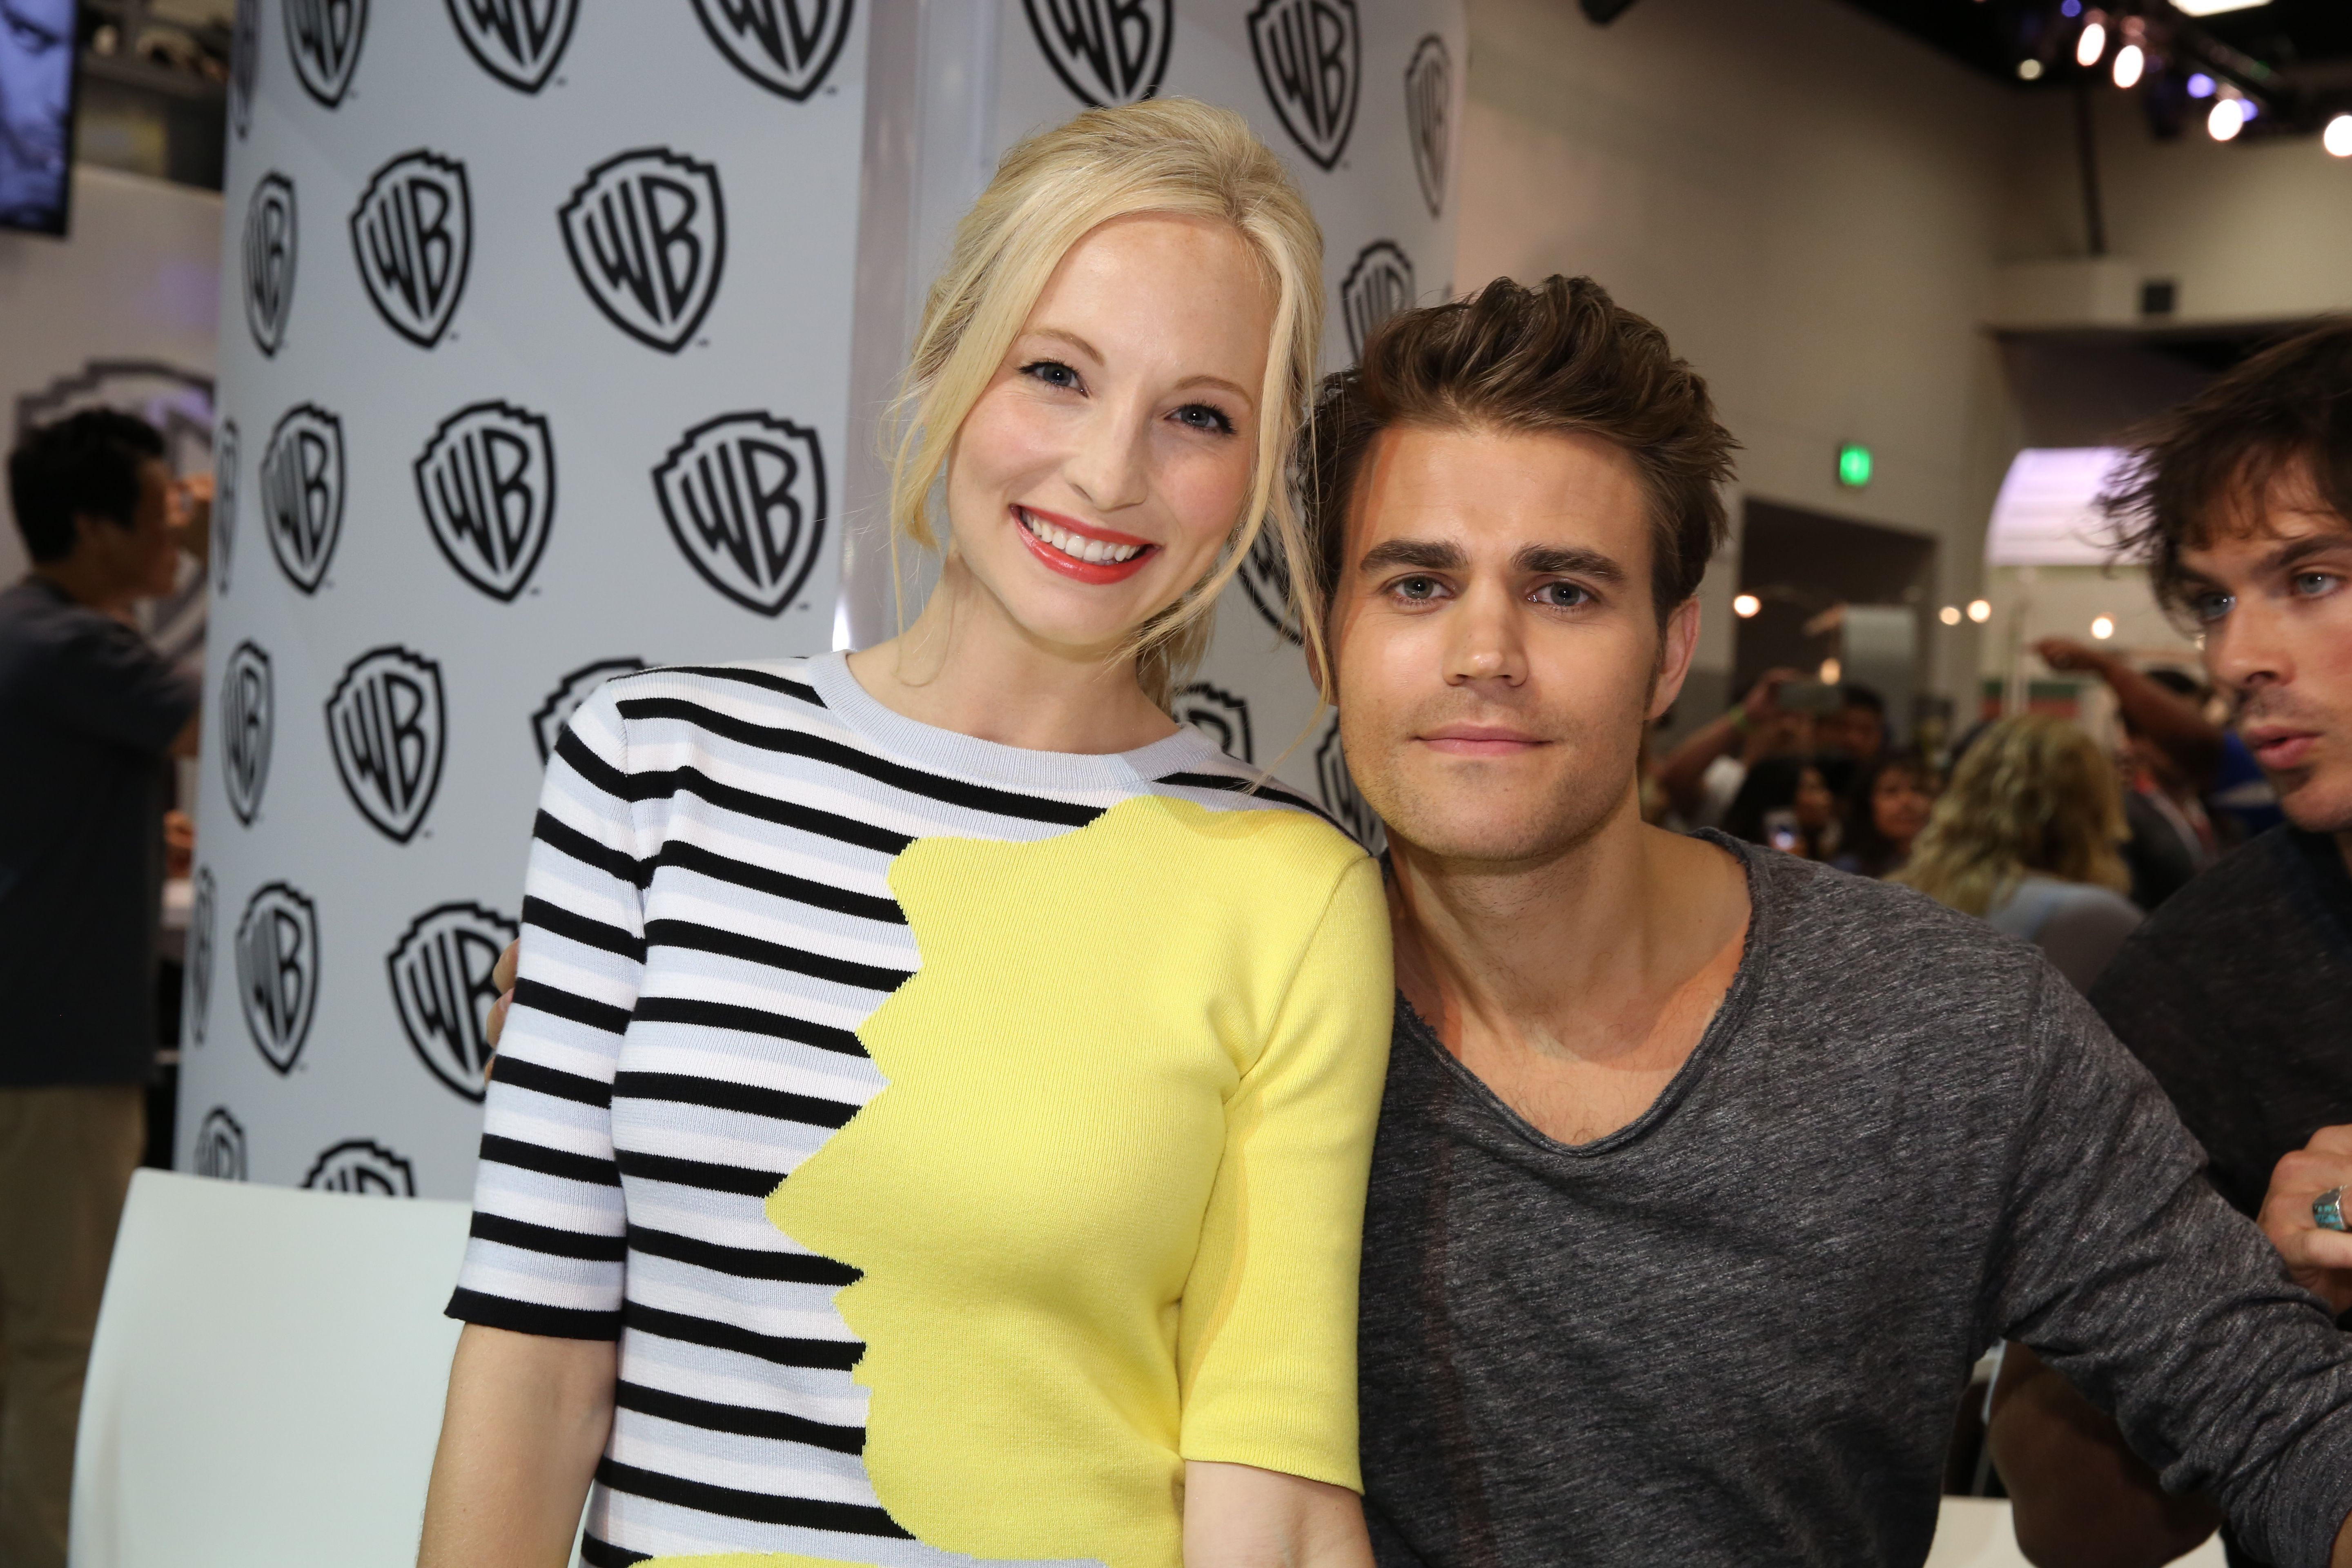 Candice Accola and Paul Wesley at Comic-Con® 2015! #CWSDCC #TVD! Pintirest: @DanyelaChan ♔ Follow Me ♔